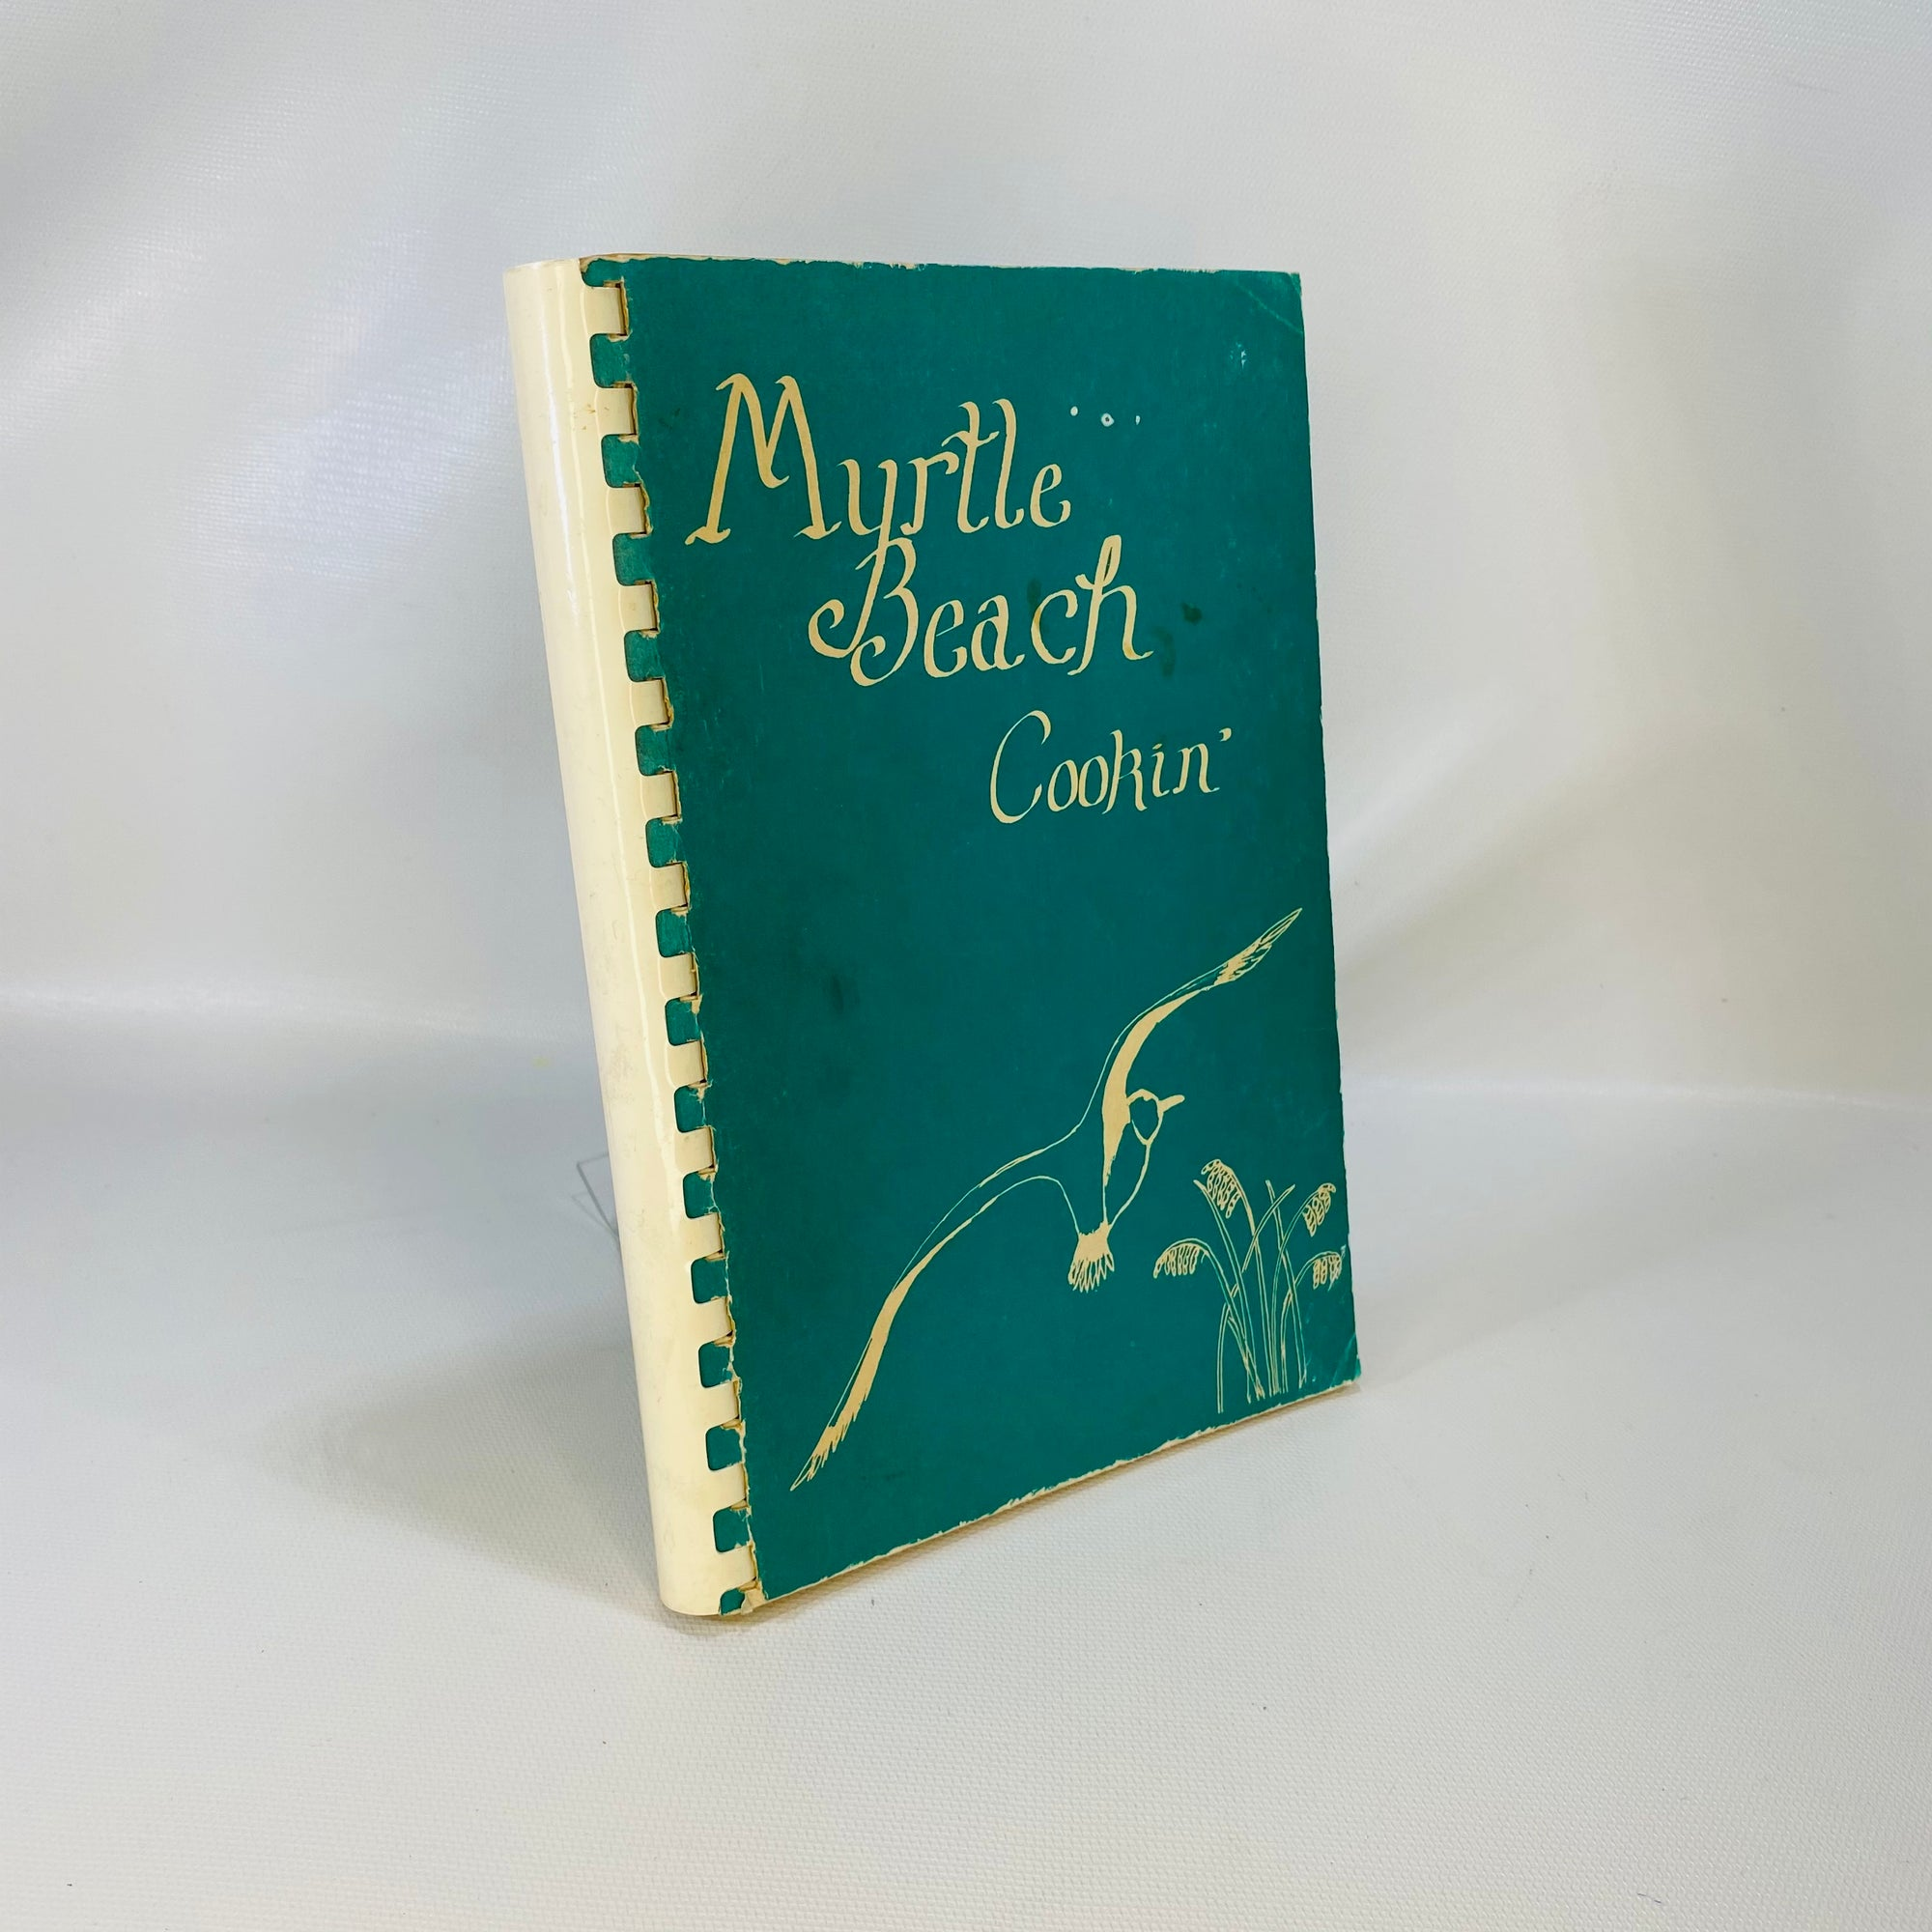 Myrtle Beach Cookin' by United Methodist Women 1980-Reading Vintage